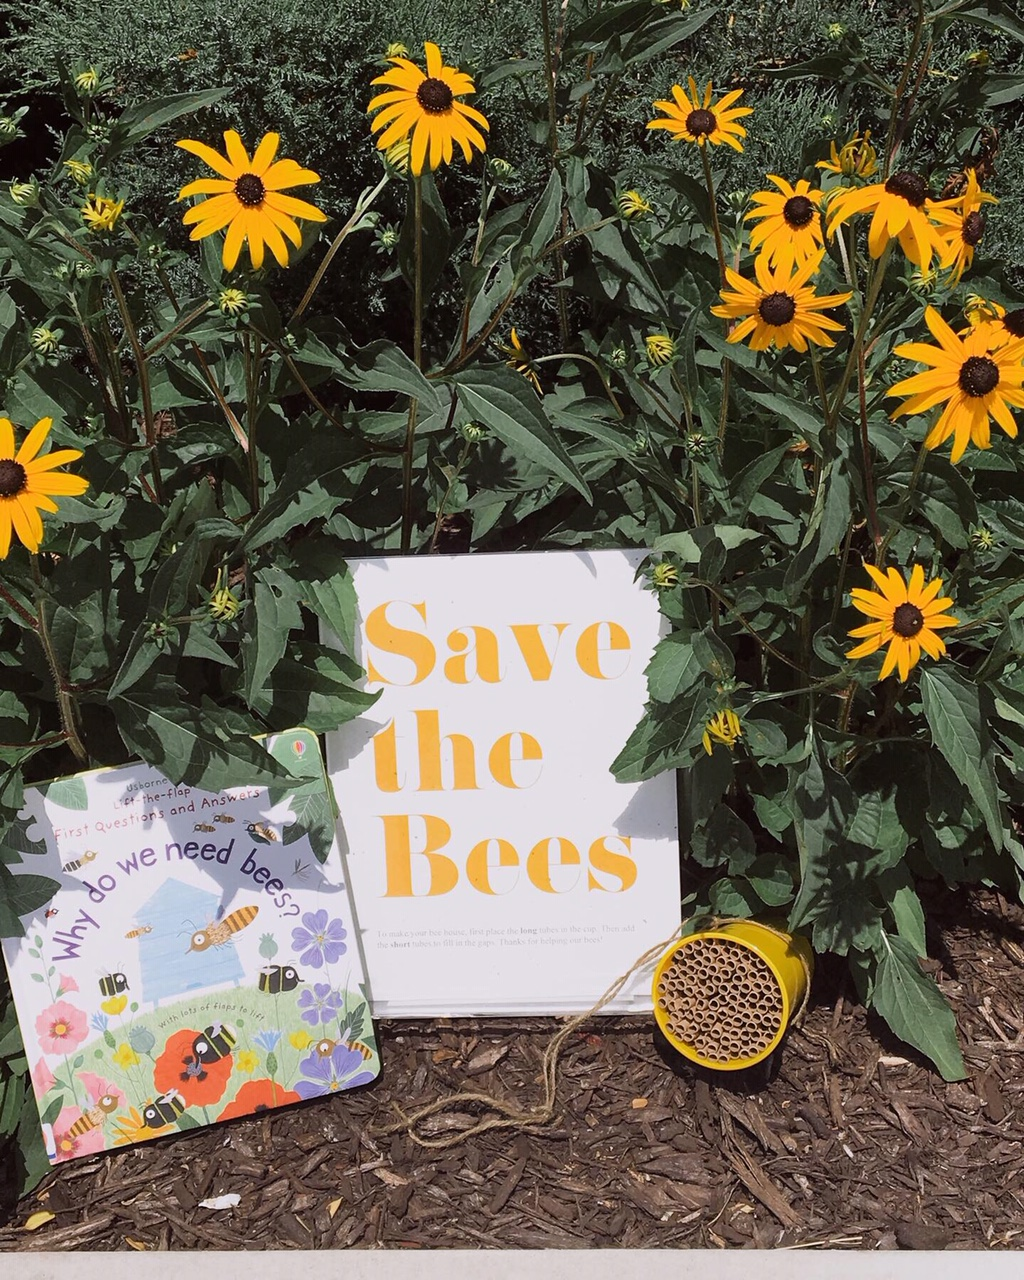 Save the Bees Story Time #savethebees #kidscraft #library #childrenslibrary